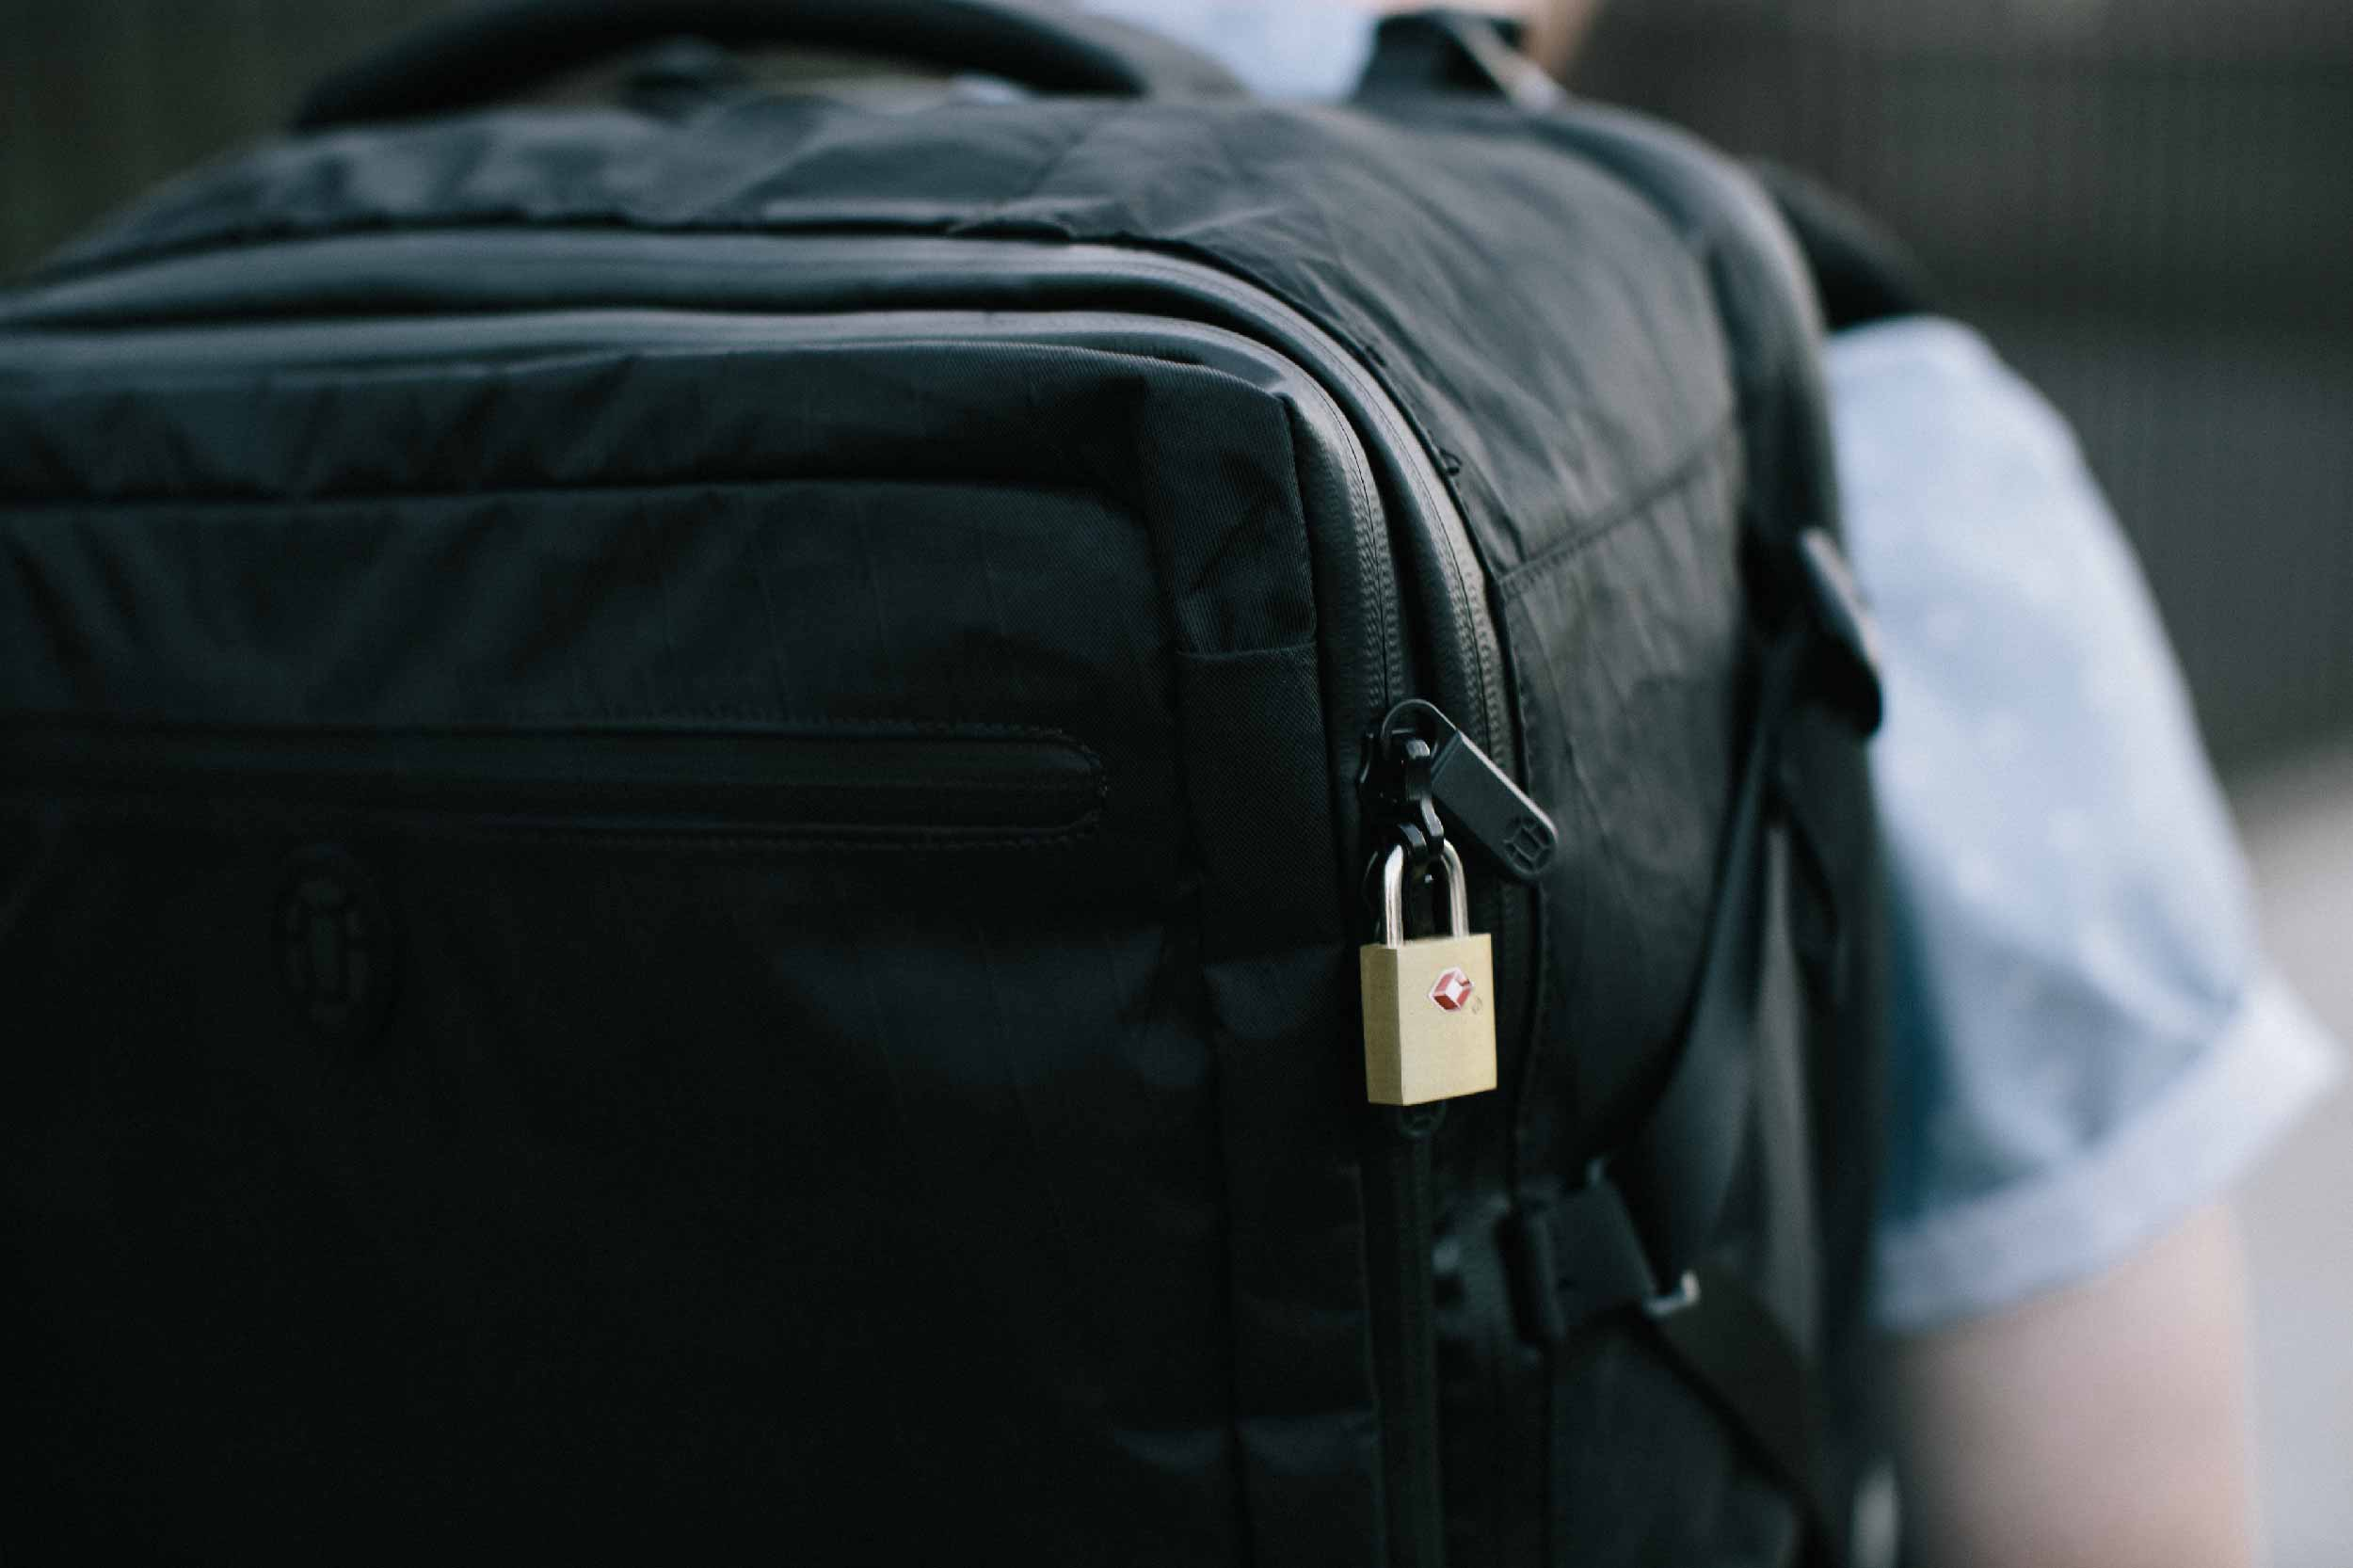 Backpack Security: Packing a Theft-Proof Backpack